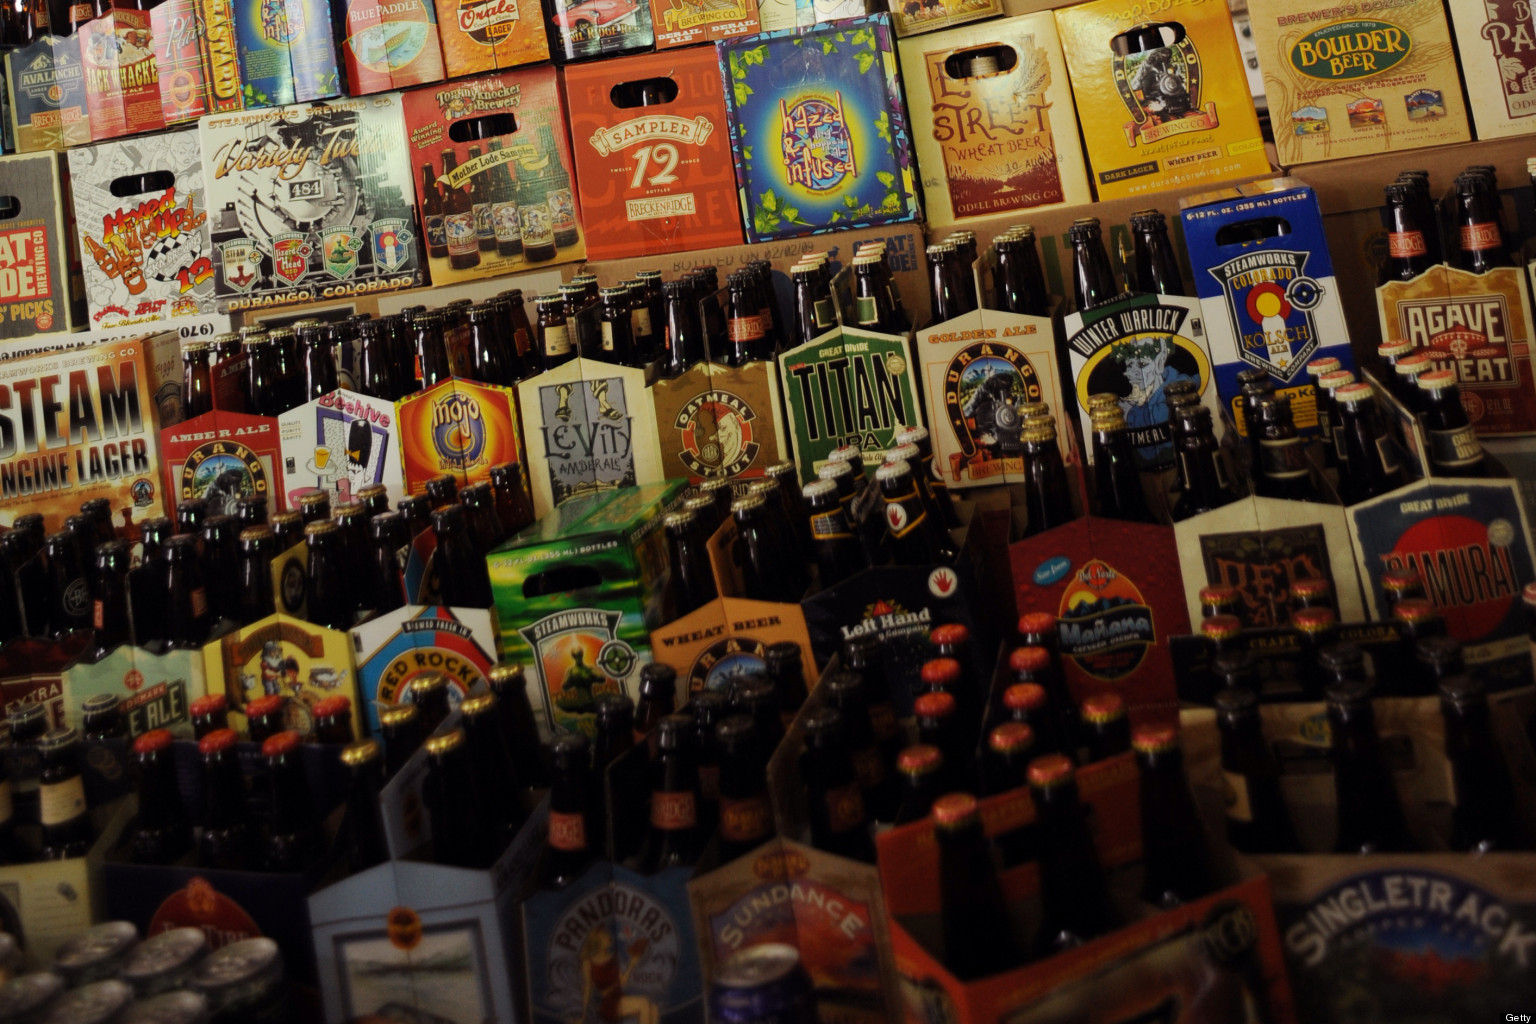 the 50 best craft beers in america in 2013 according to